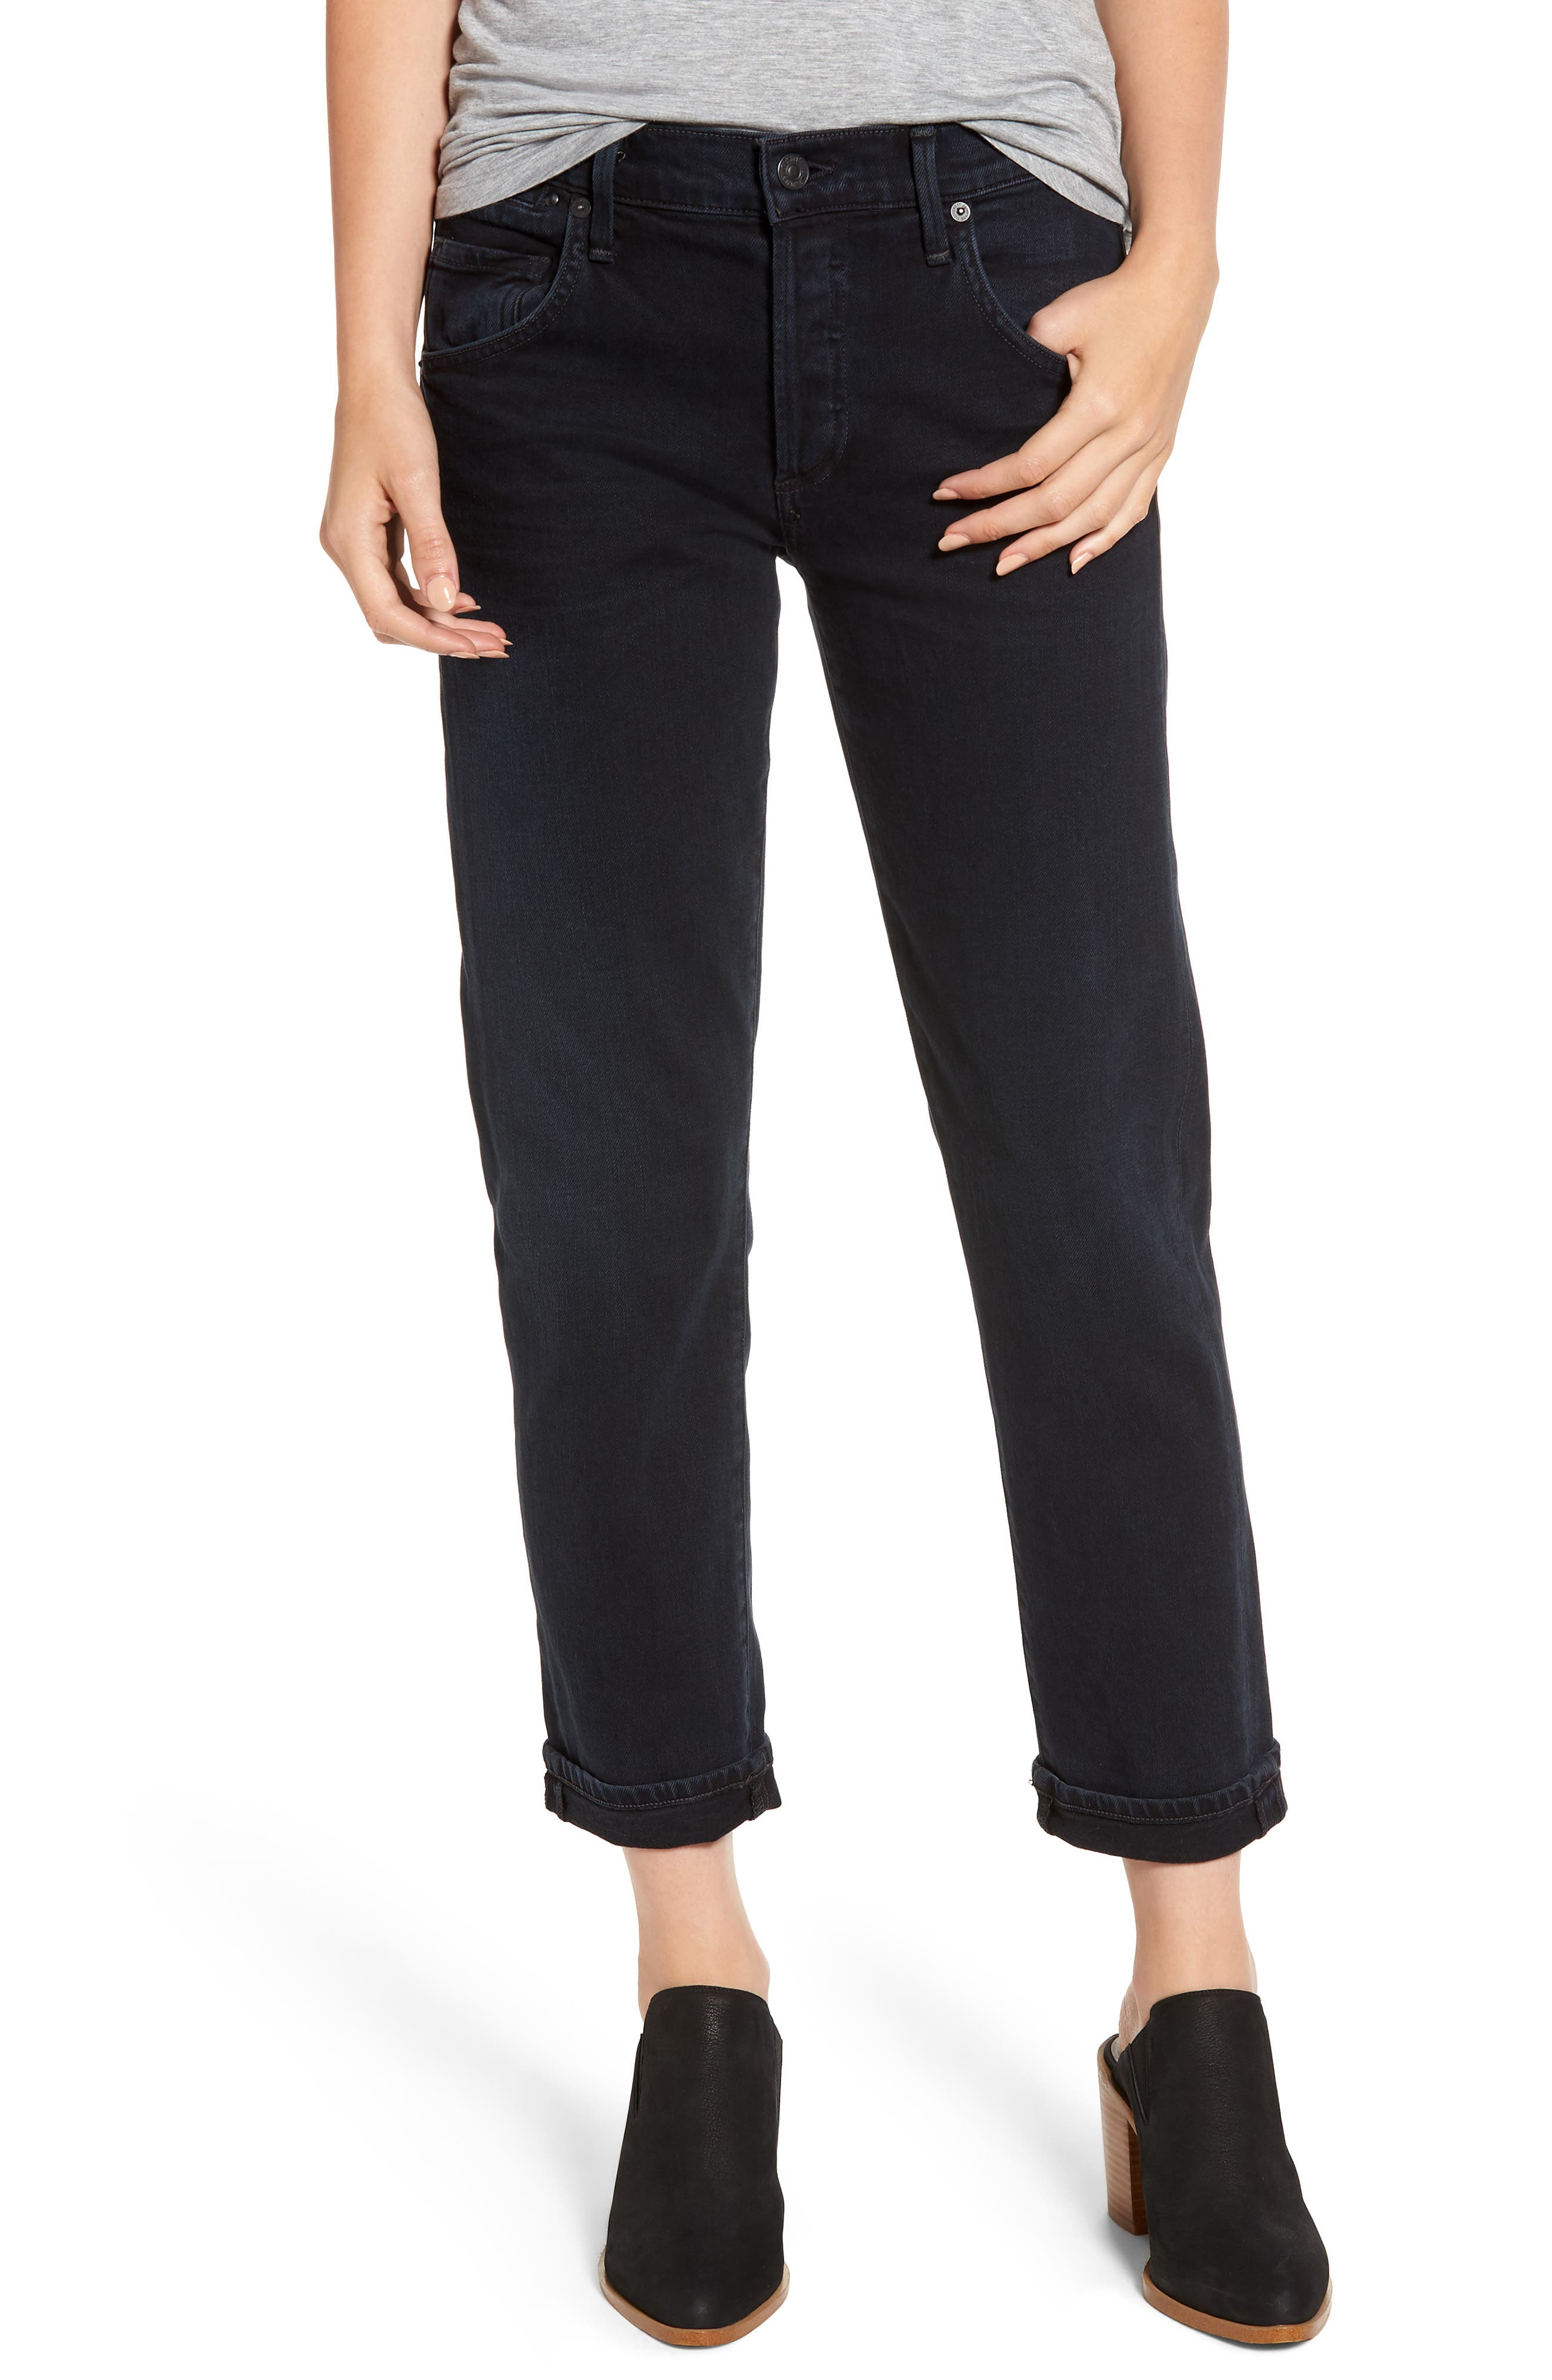 CITIZENS OF HUMANITY, Emerson Slim Boyfriend Jeans, Main thumbnail 1, color, NIGHT SHADE